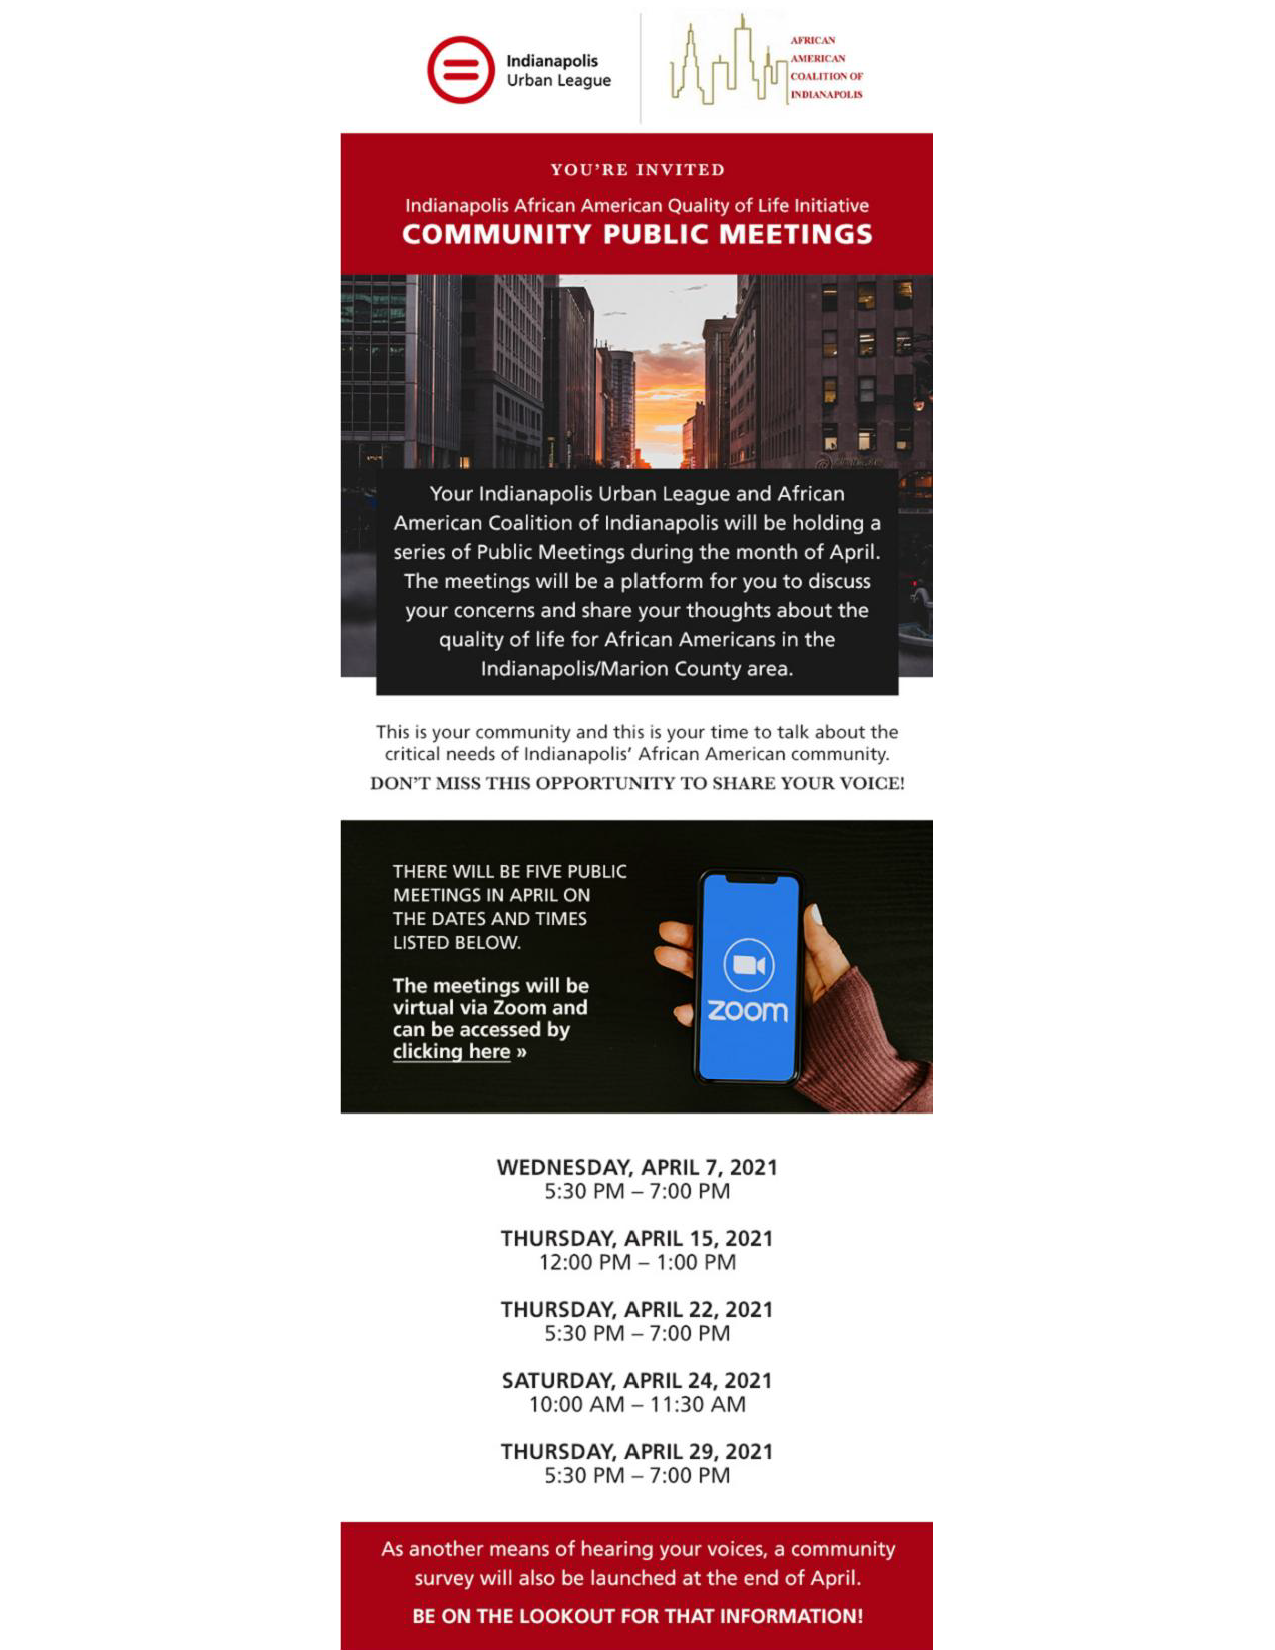 Indianapolis African American Quality Of Life Initiative Community Public Meetings Flyer (1)